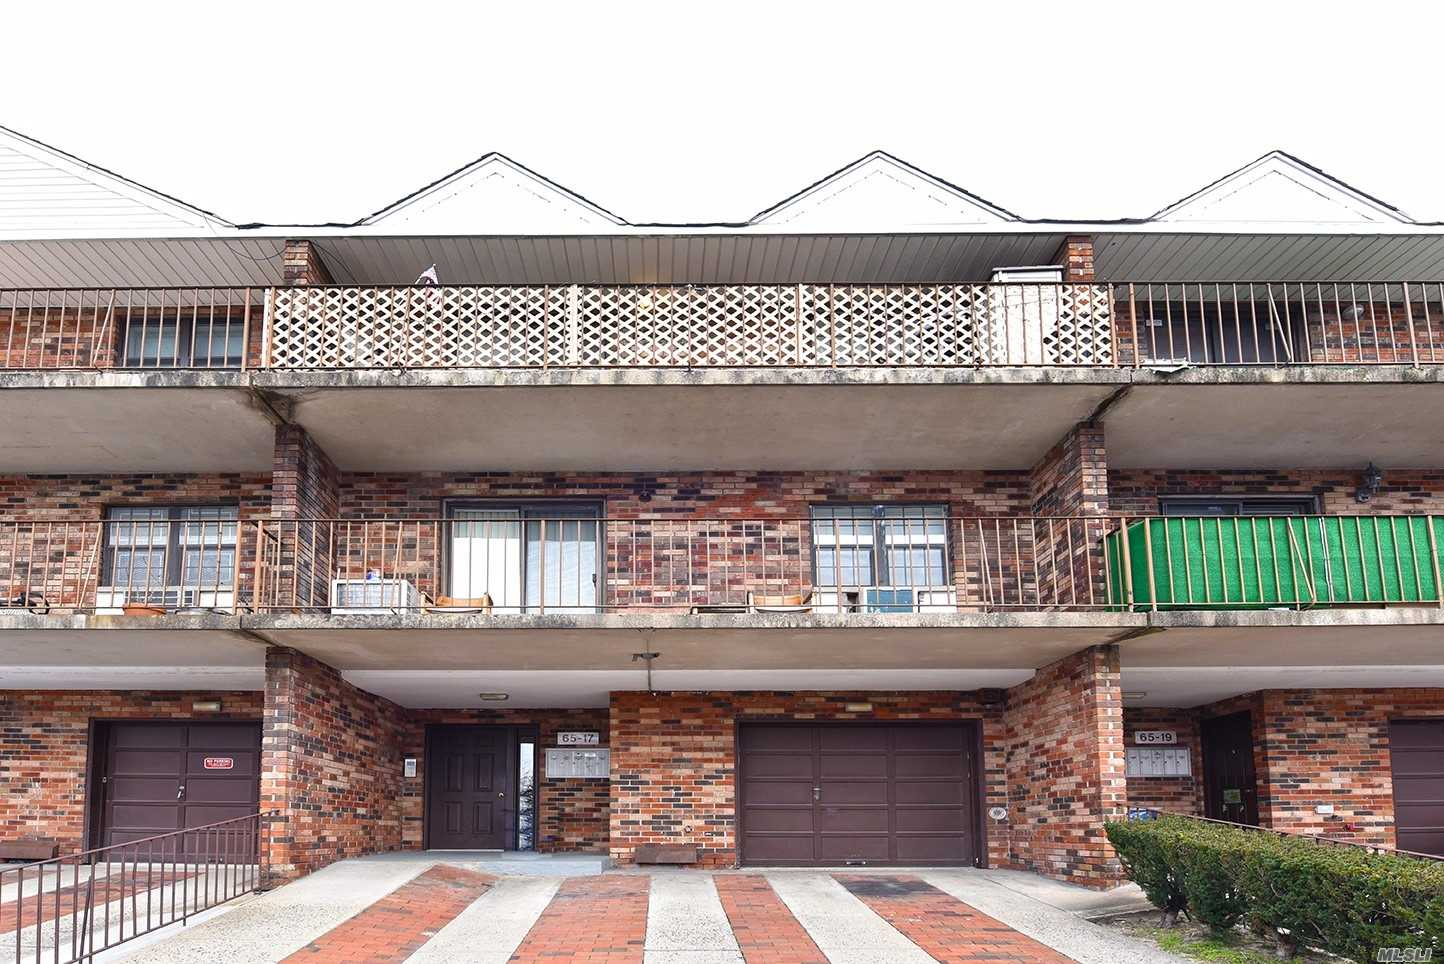 Bright One Bedroom Brick Condo Converted Into A Junior 4. Extra Bedroom W/Closet Space Fits Twin Bed. Fully Renovated Bathroom, Updated Kitchen W/Stainless Steel Appliances & Granite Counter Tops. Modern Light Fixtures Throughout. Travertine Marble Floors Underneath Flooring In Living Room. Twenty Foot Private Tiled Balcony W/Gorgeous Views & Storage Bin. Private Storage Space In Basement W/Clothes Washer & Dryer. Includes Private Parking Spot. Walk To Shopping Ctr, Buses & Minutes To L.I.R.R.